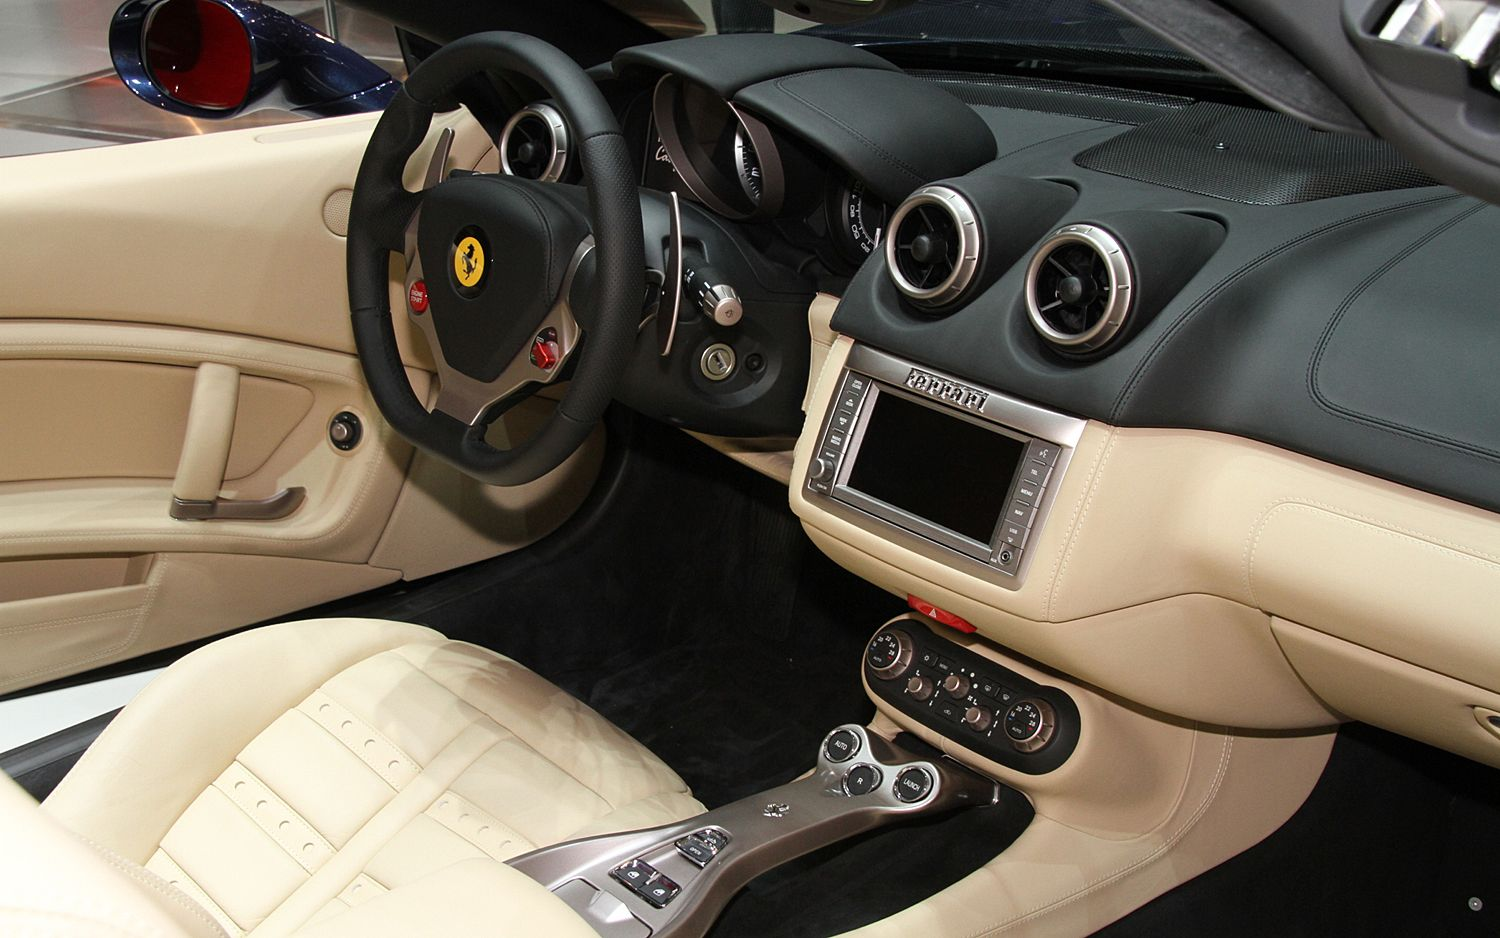 The new 2013 Ferrari California